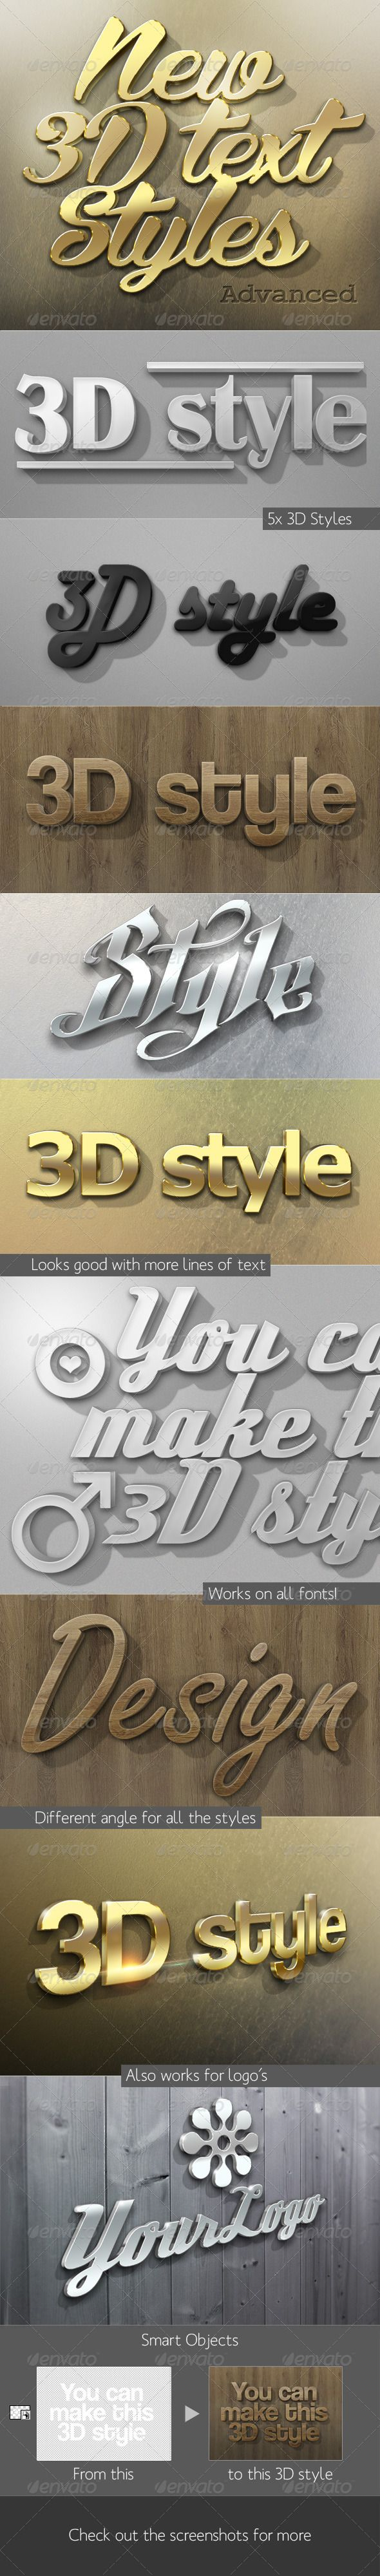 Mysterious poster design with 3d text - New 3d Text Styles Advanced